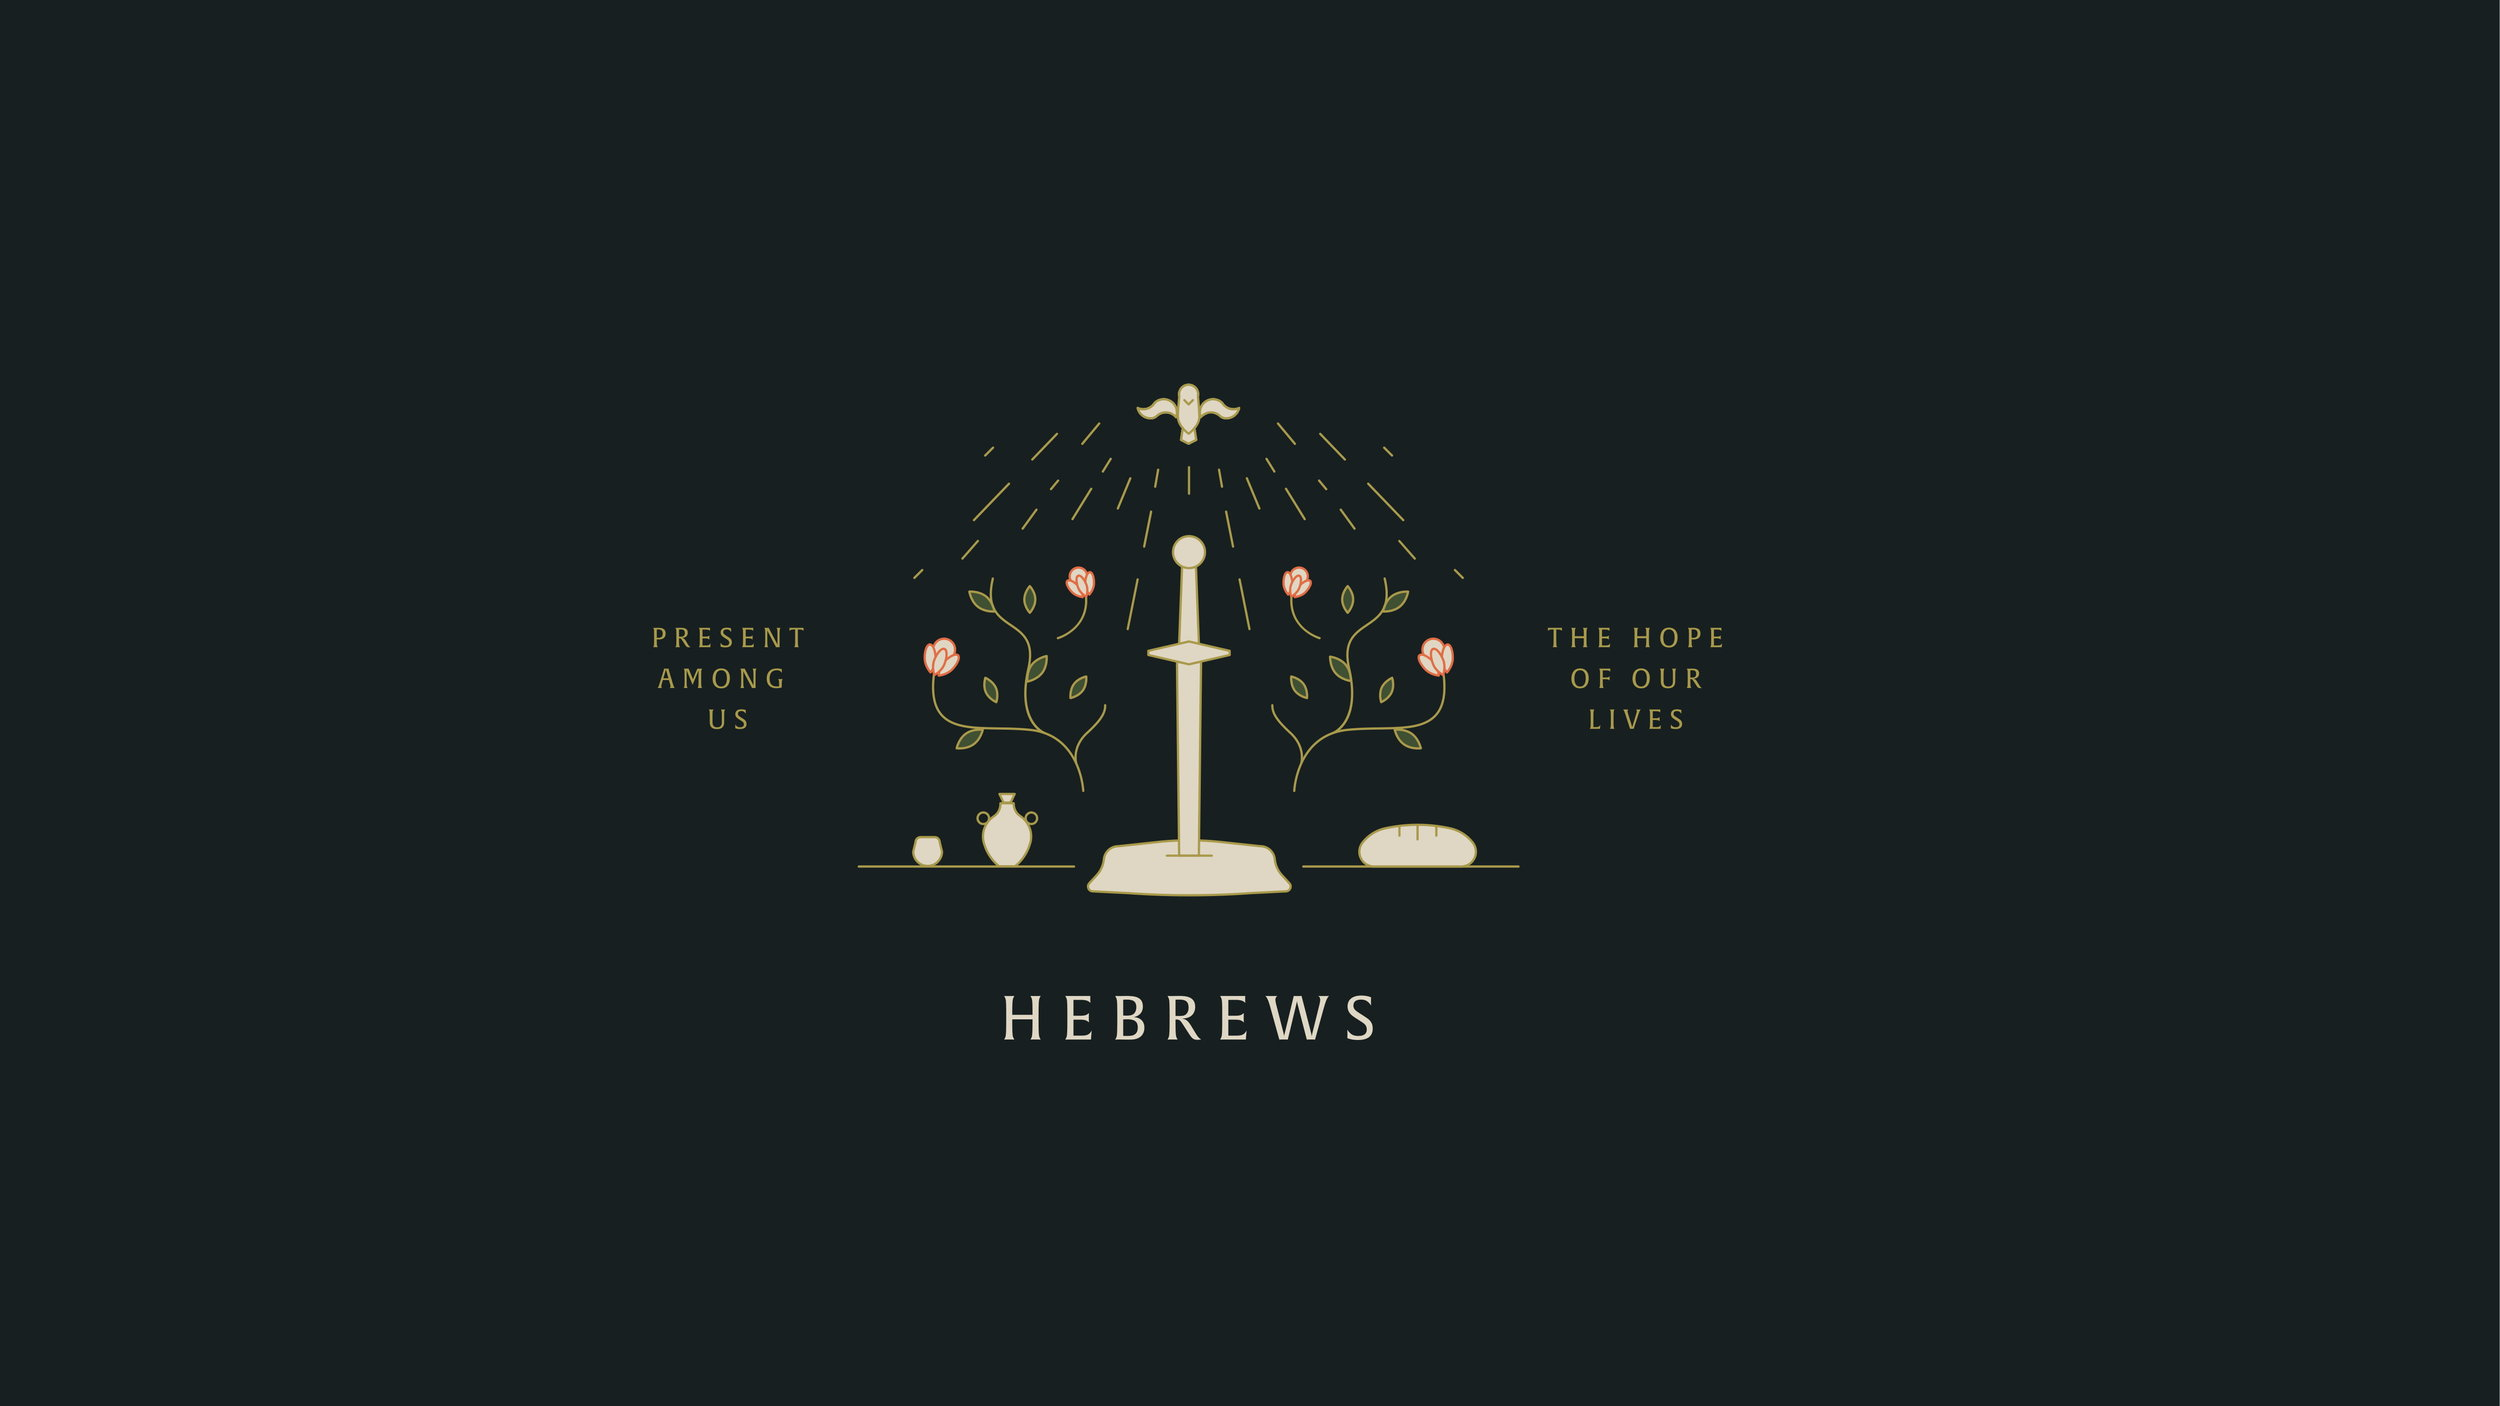 Hebrews Slide-1.jpg